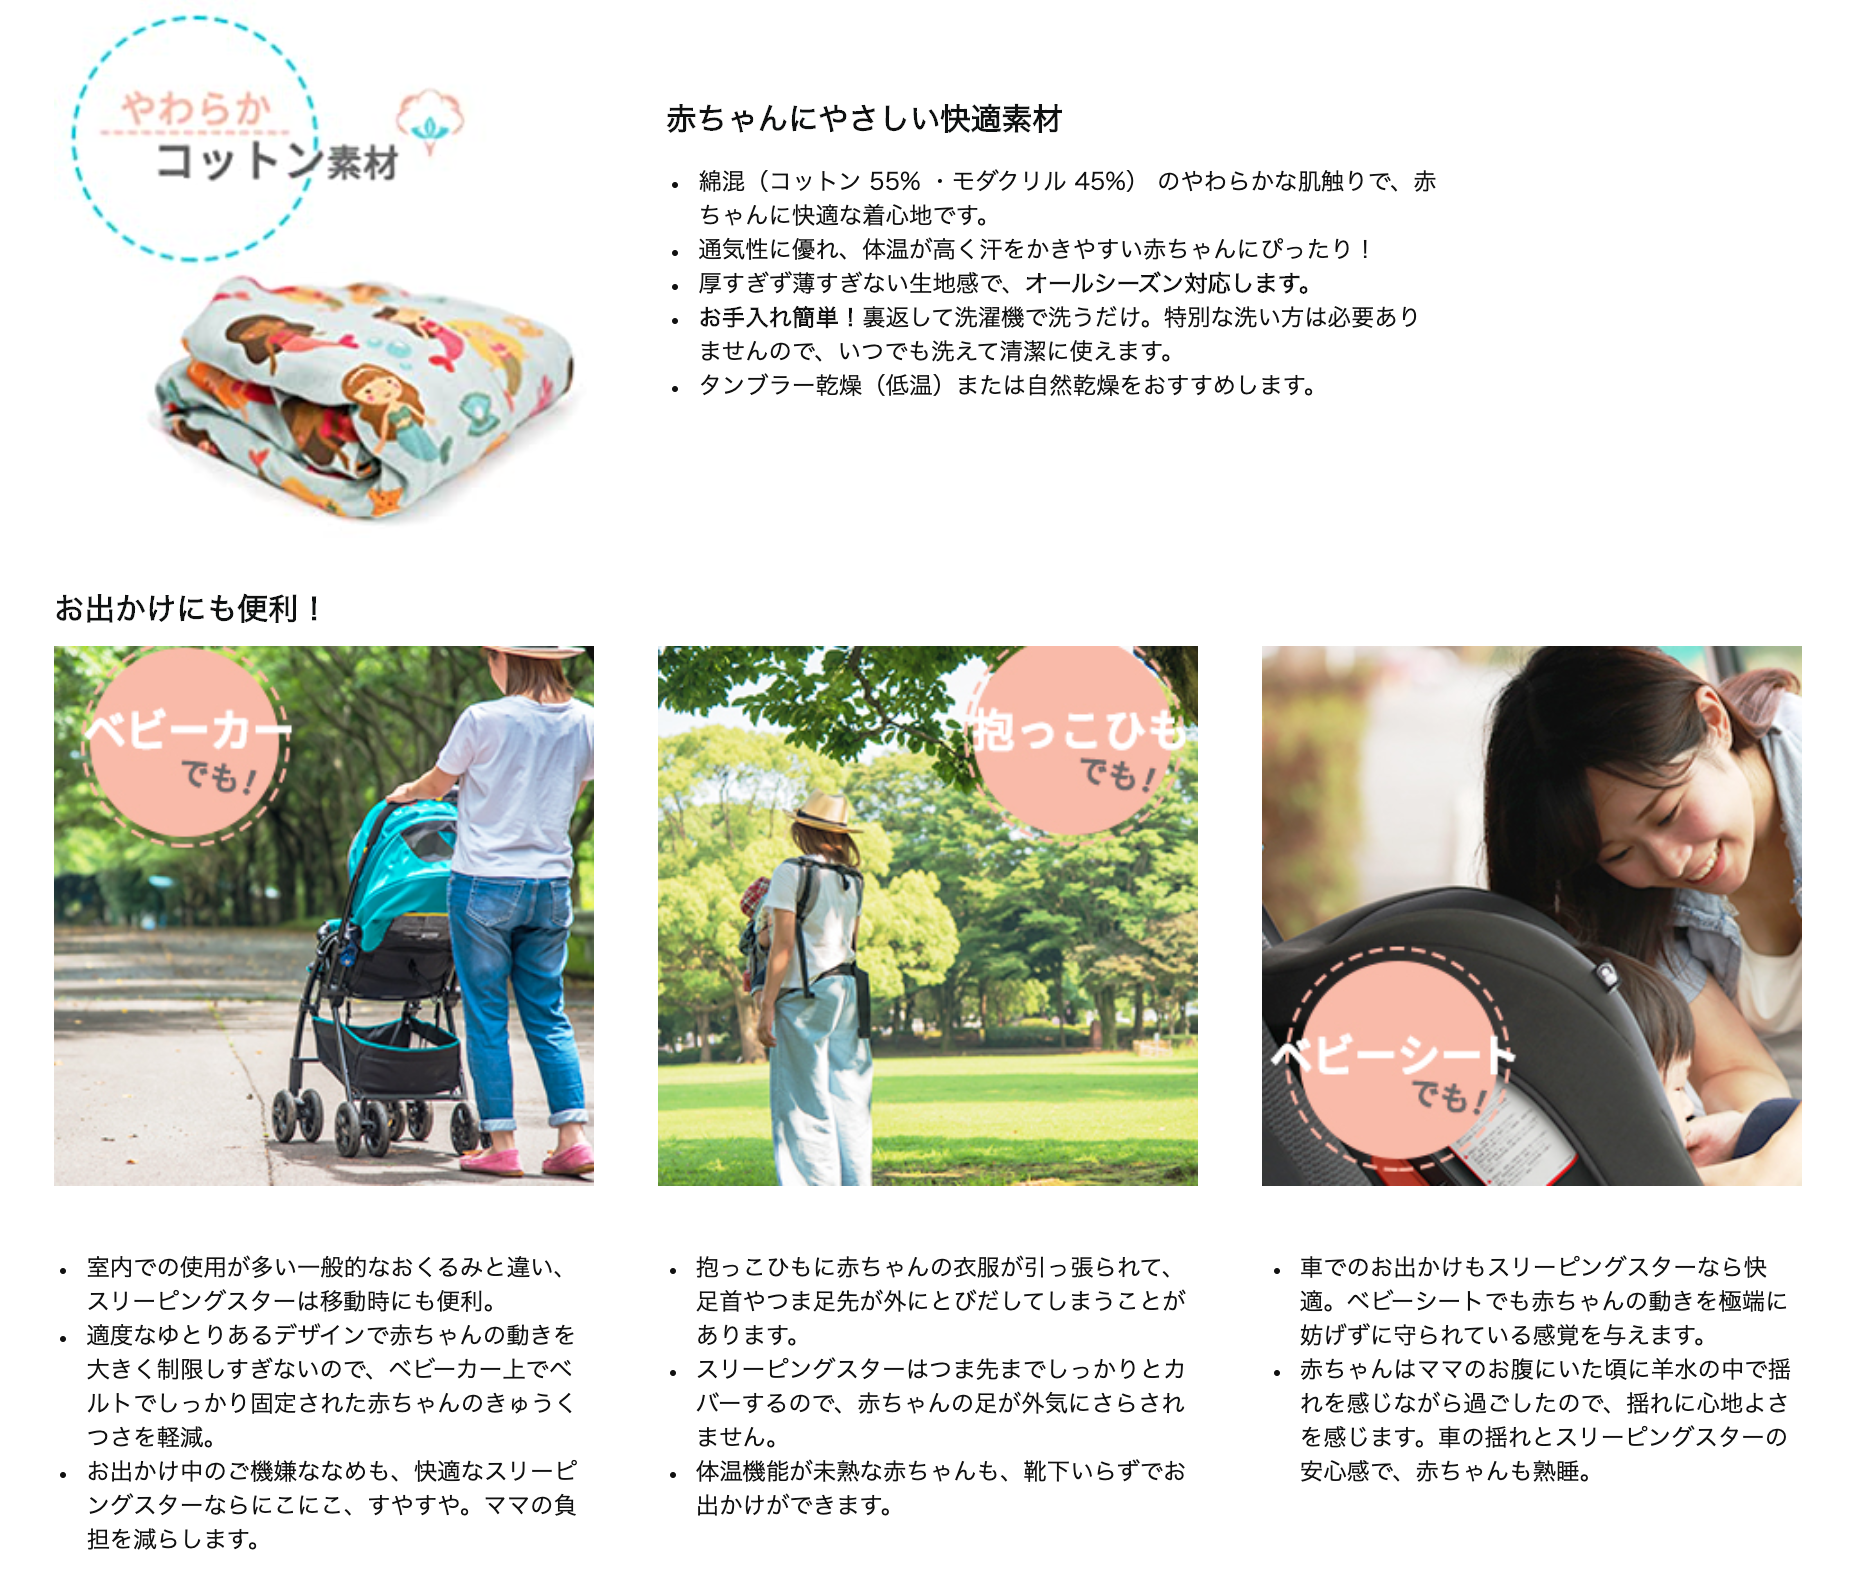 Japanese ecommerce agency services in Tokyo testing A+ content example